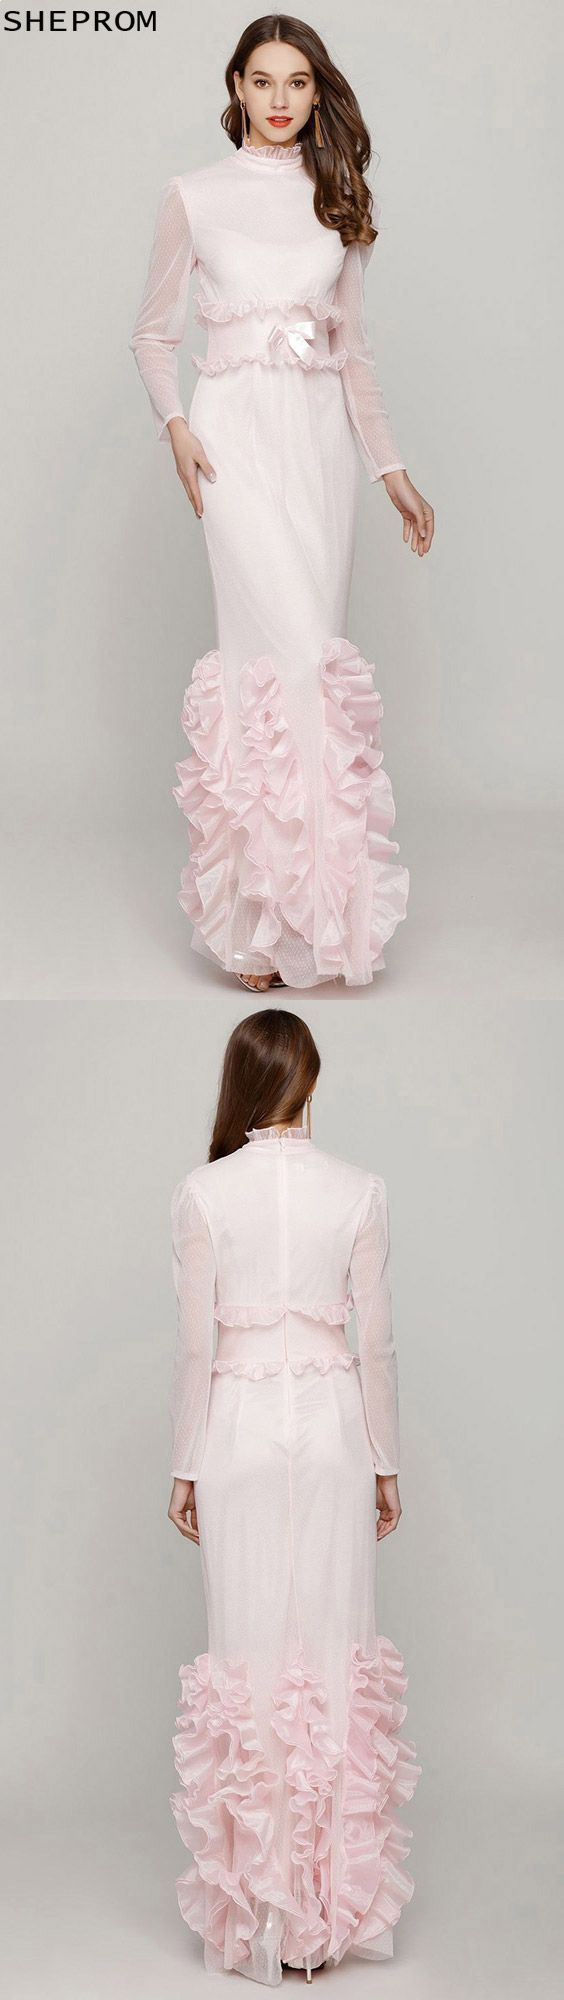 Light pink fishtail fitted prom dress with high neck long sleeves